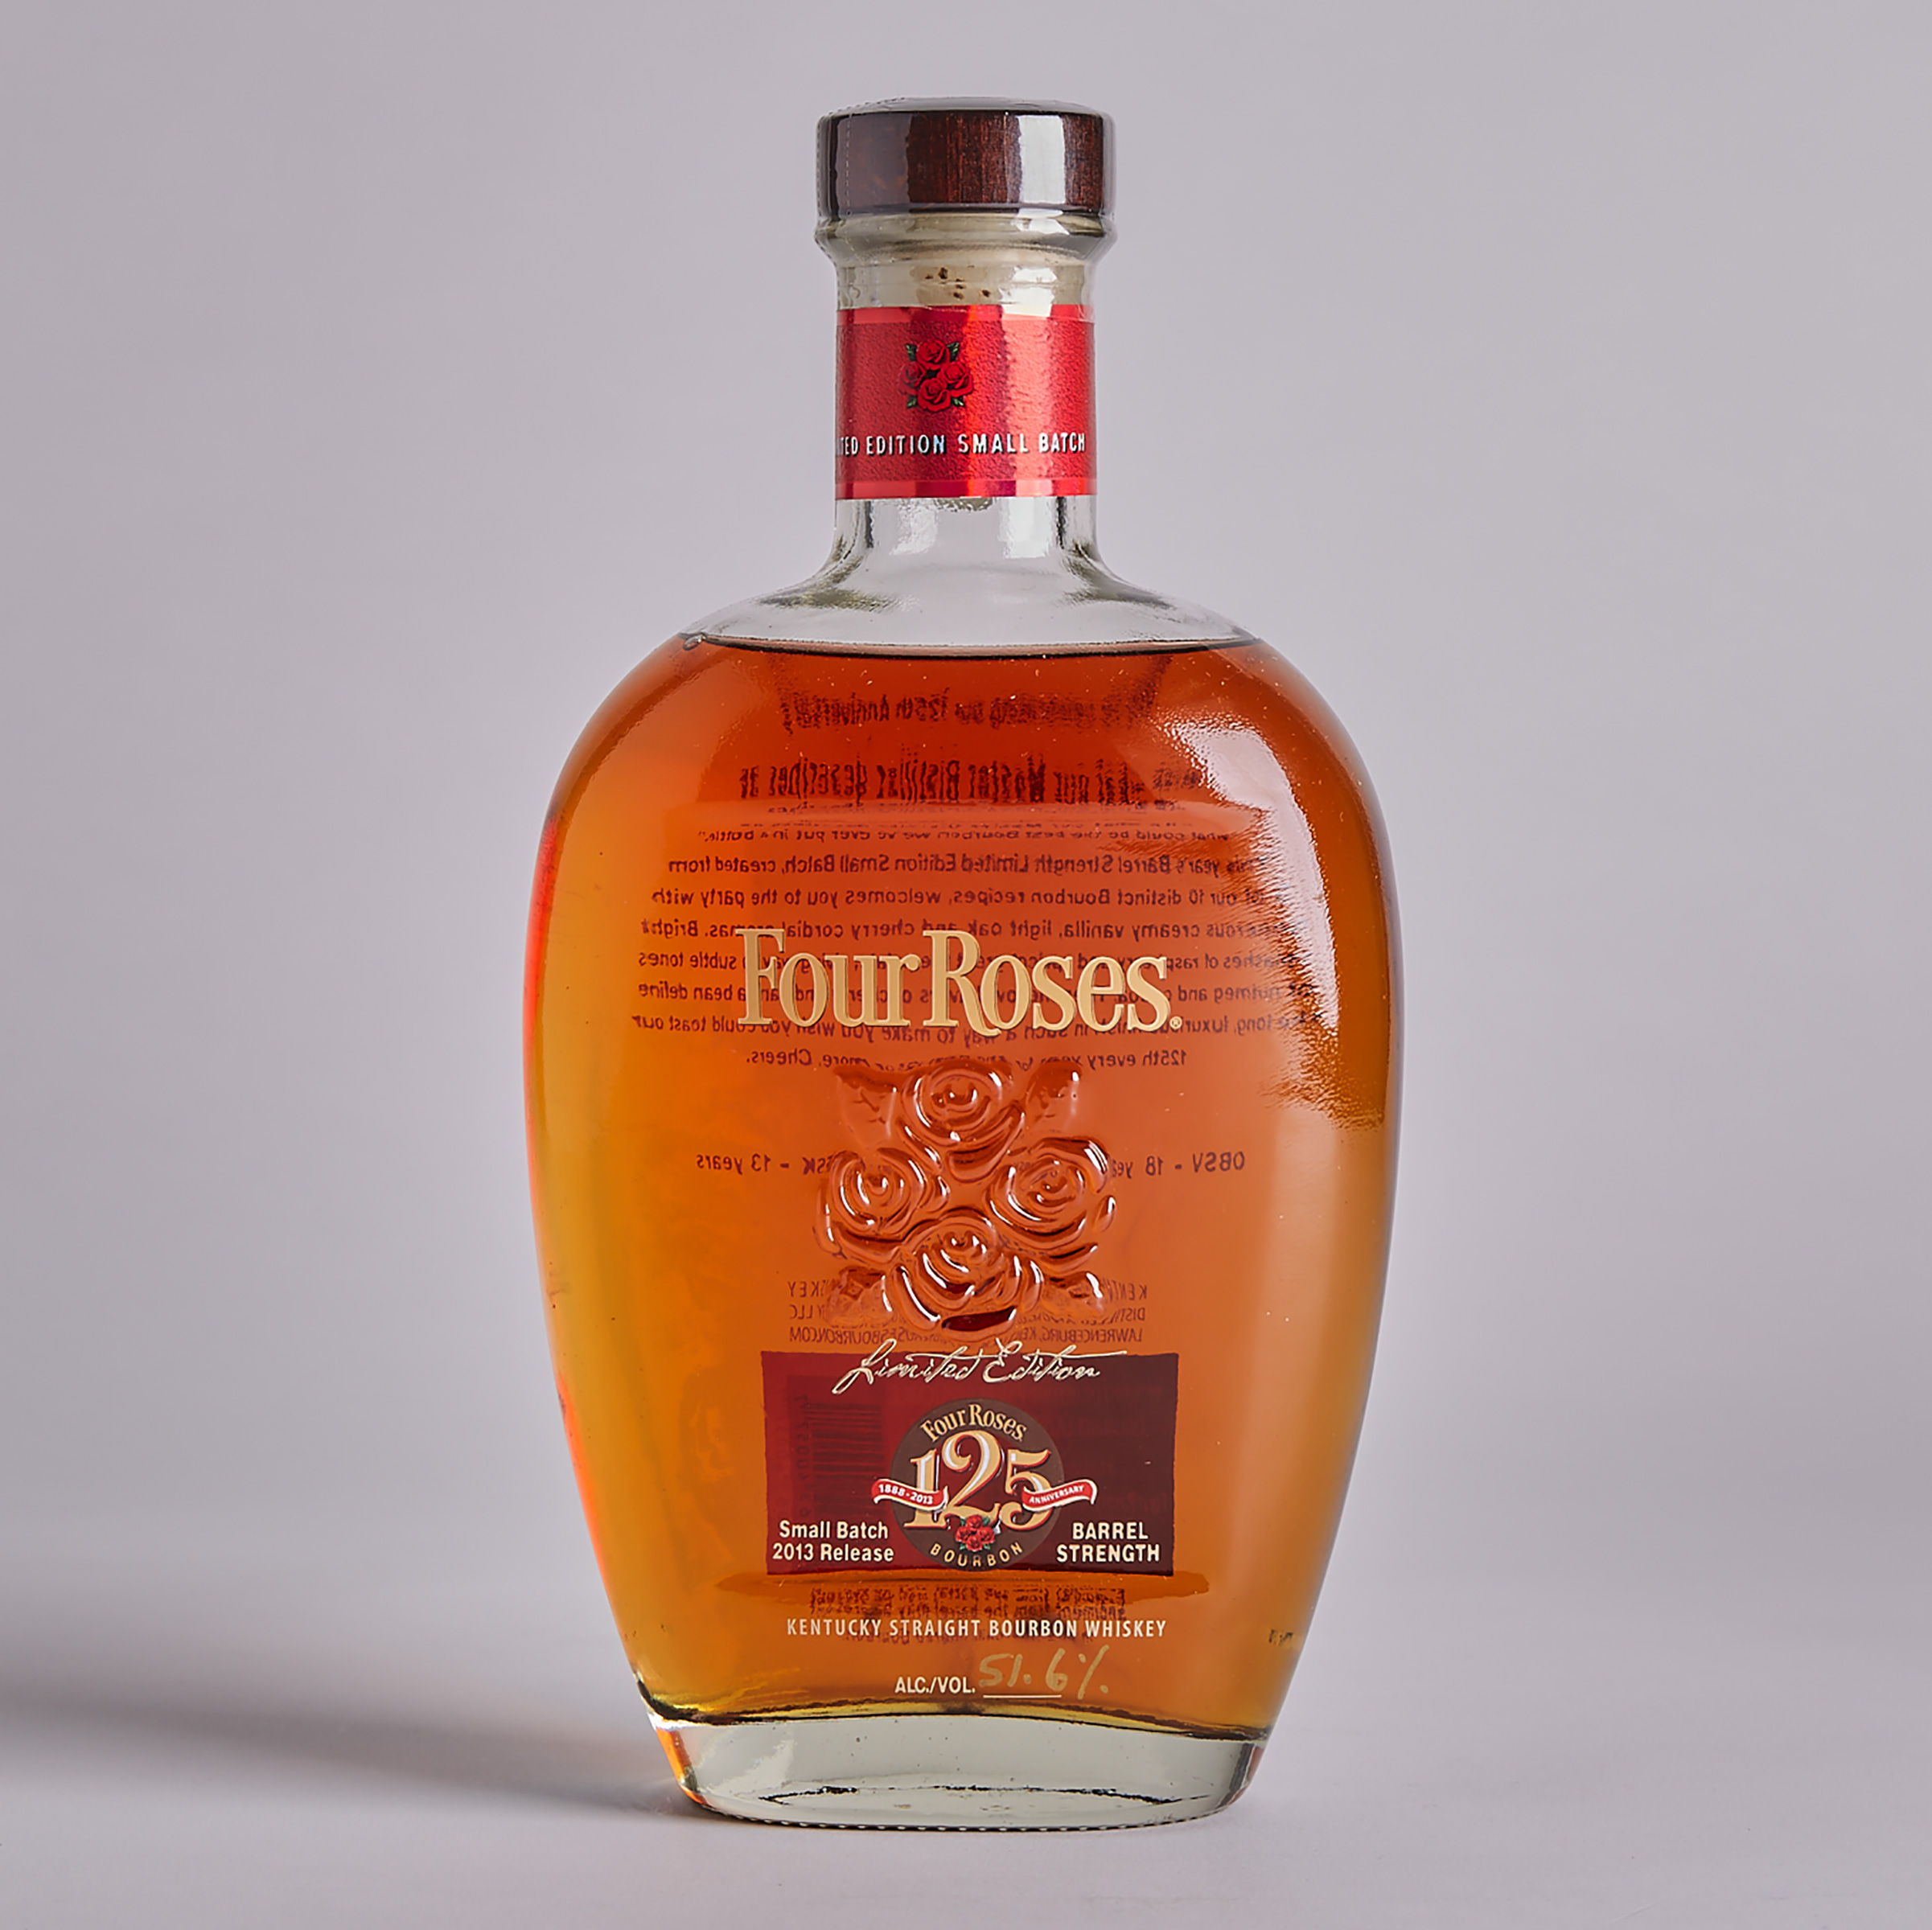 FOUR ROSES LIMITED EDITION KENTUCKY STRAIGHT BOURBON WHISKEY (ONE 750 ML)